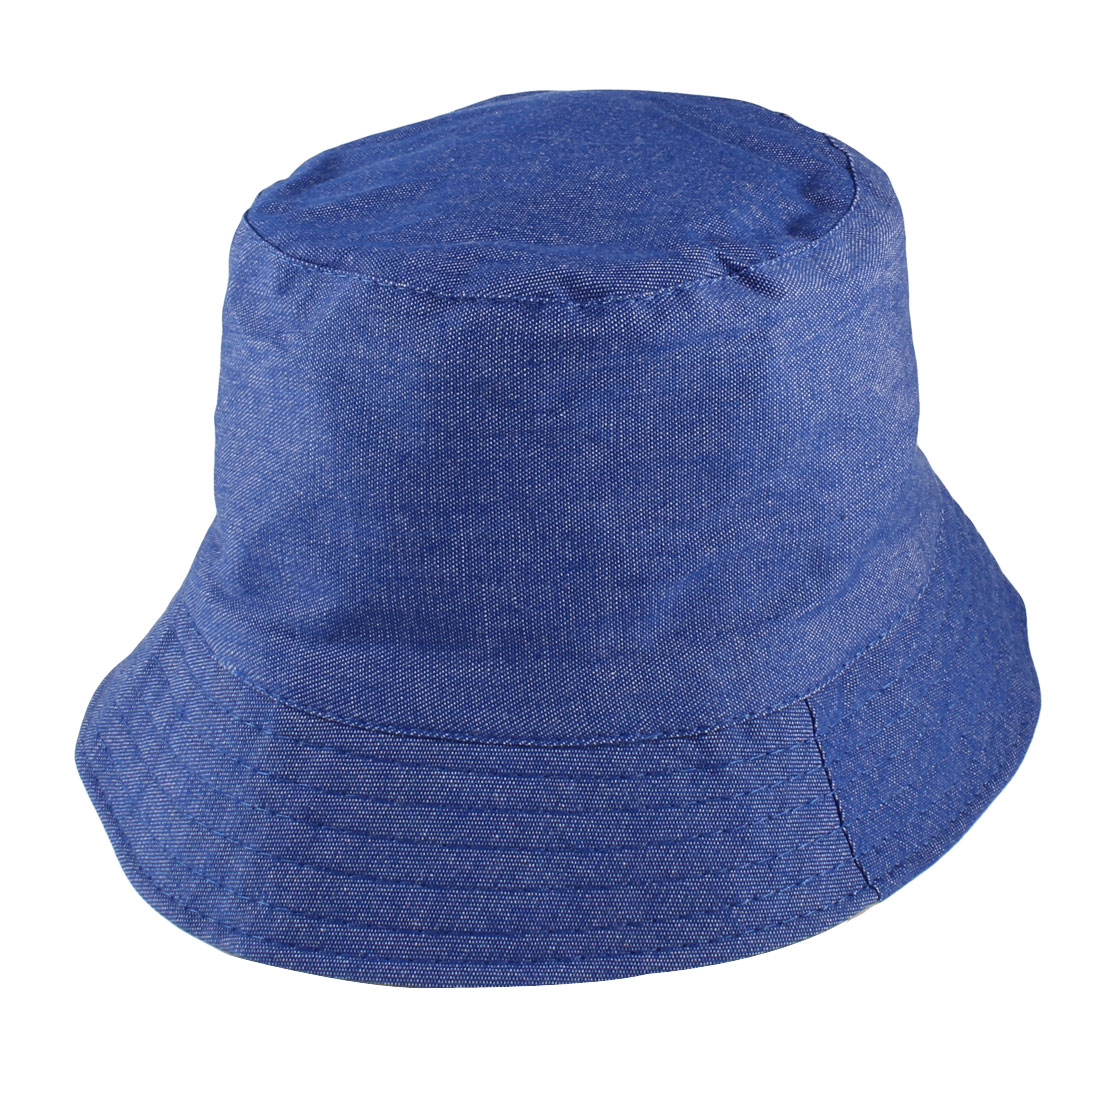 Nylon Wave Brim Bucket Style Sun Hat Cap Royal Blue for Old Man